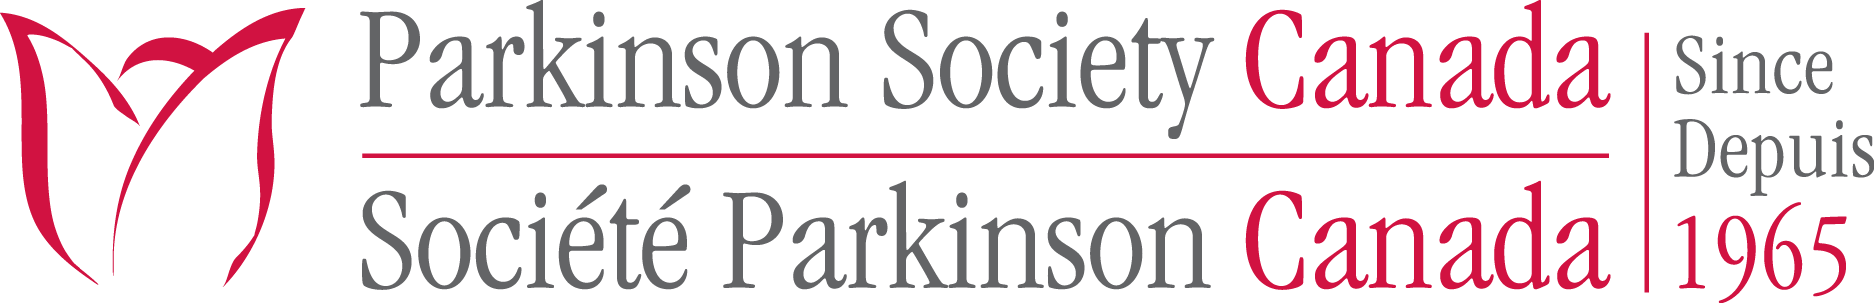 Parkinsons Society of Canada